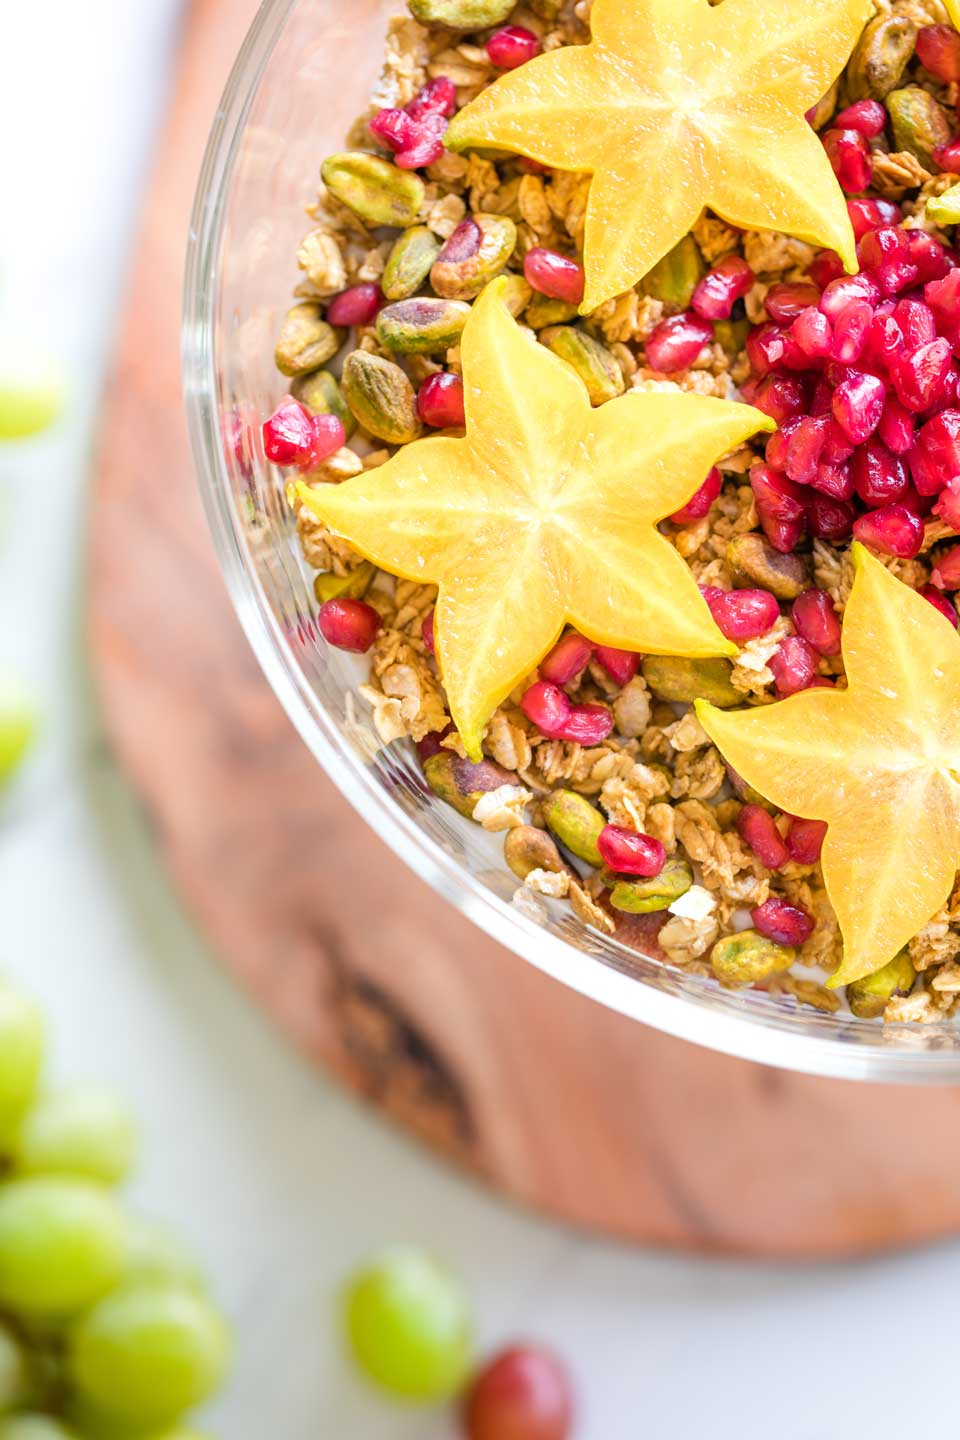 Overhead closeup of three of the starfruit stars on top of the salad, with the trifle bowl sitting on the the cutting board and extra grapes nearby.